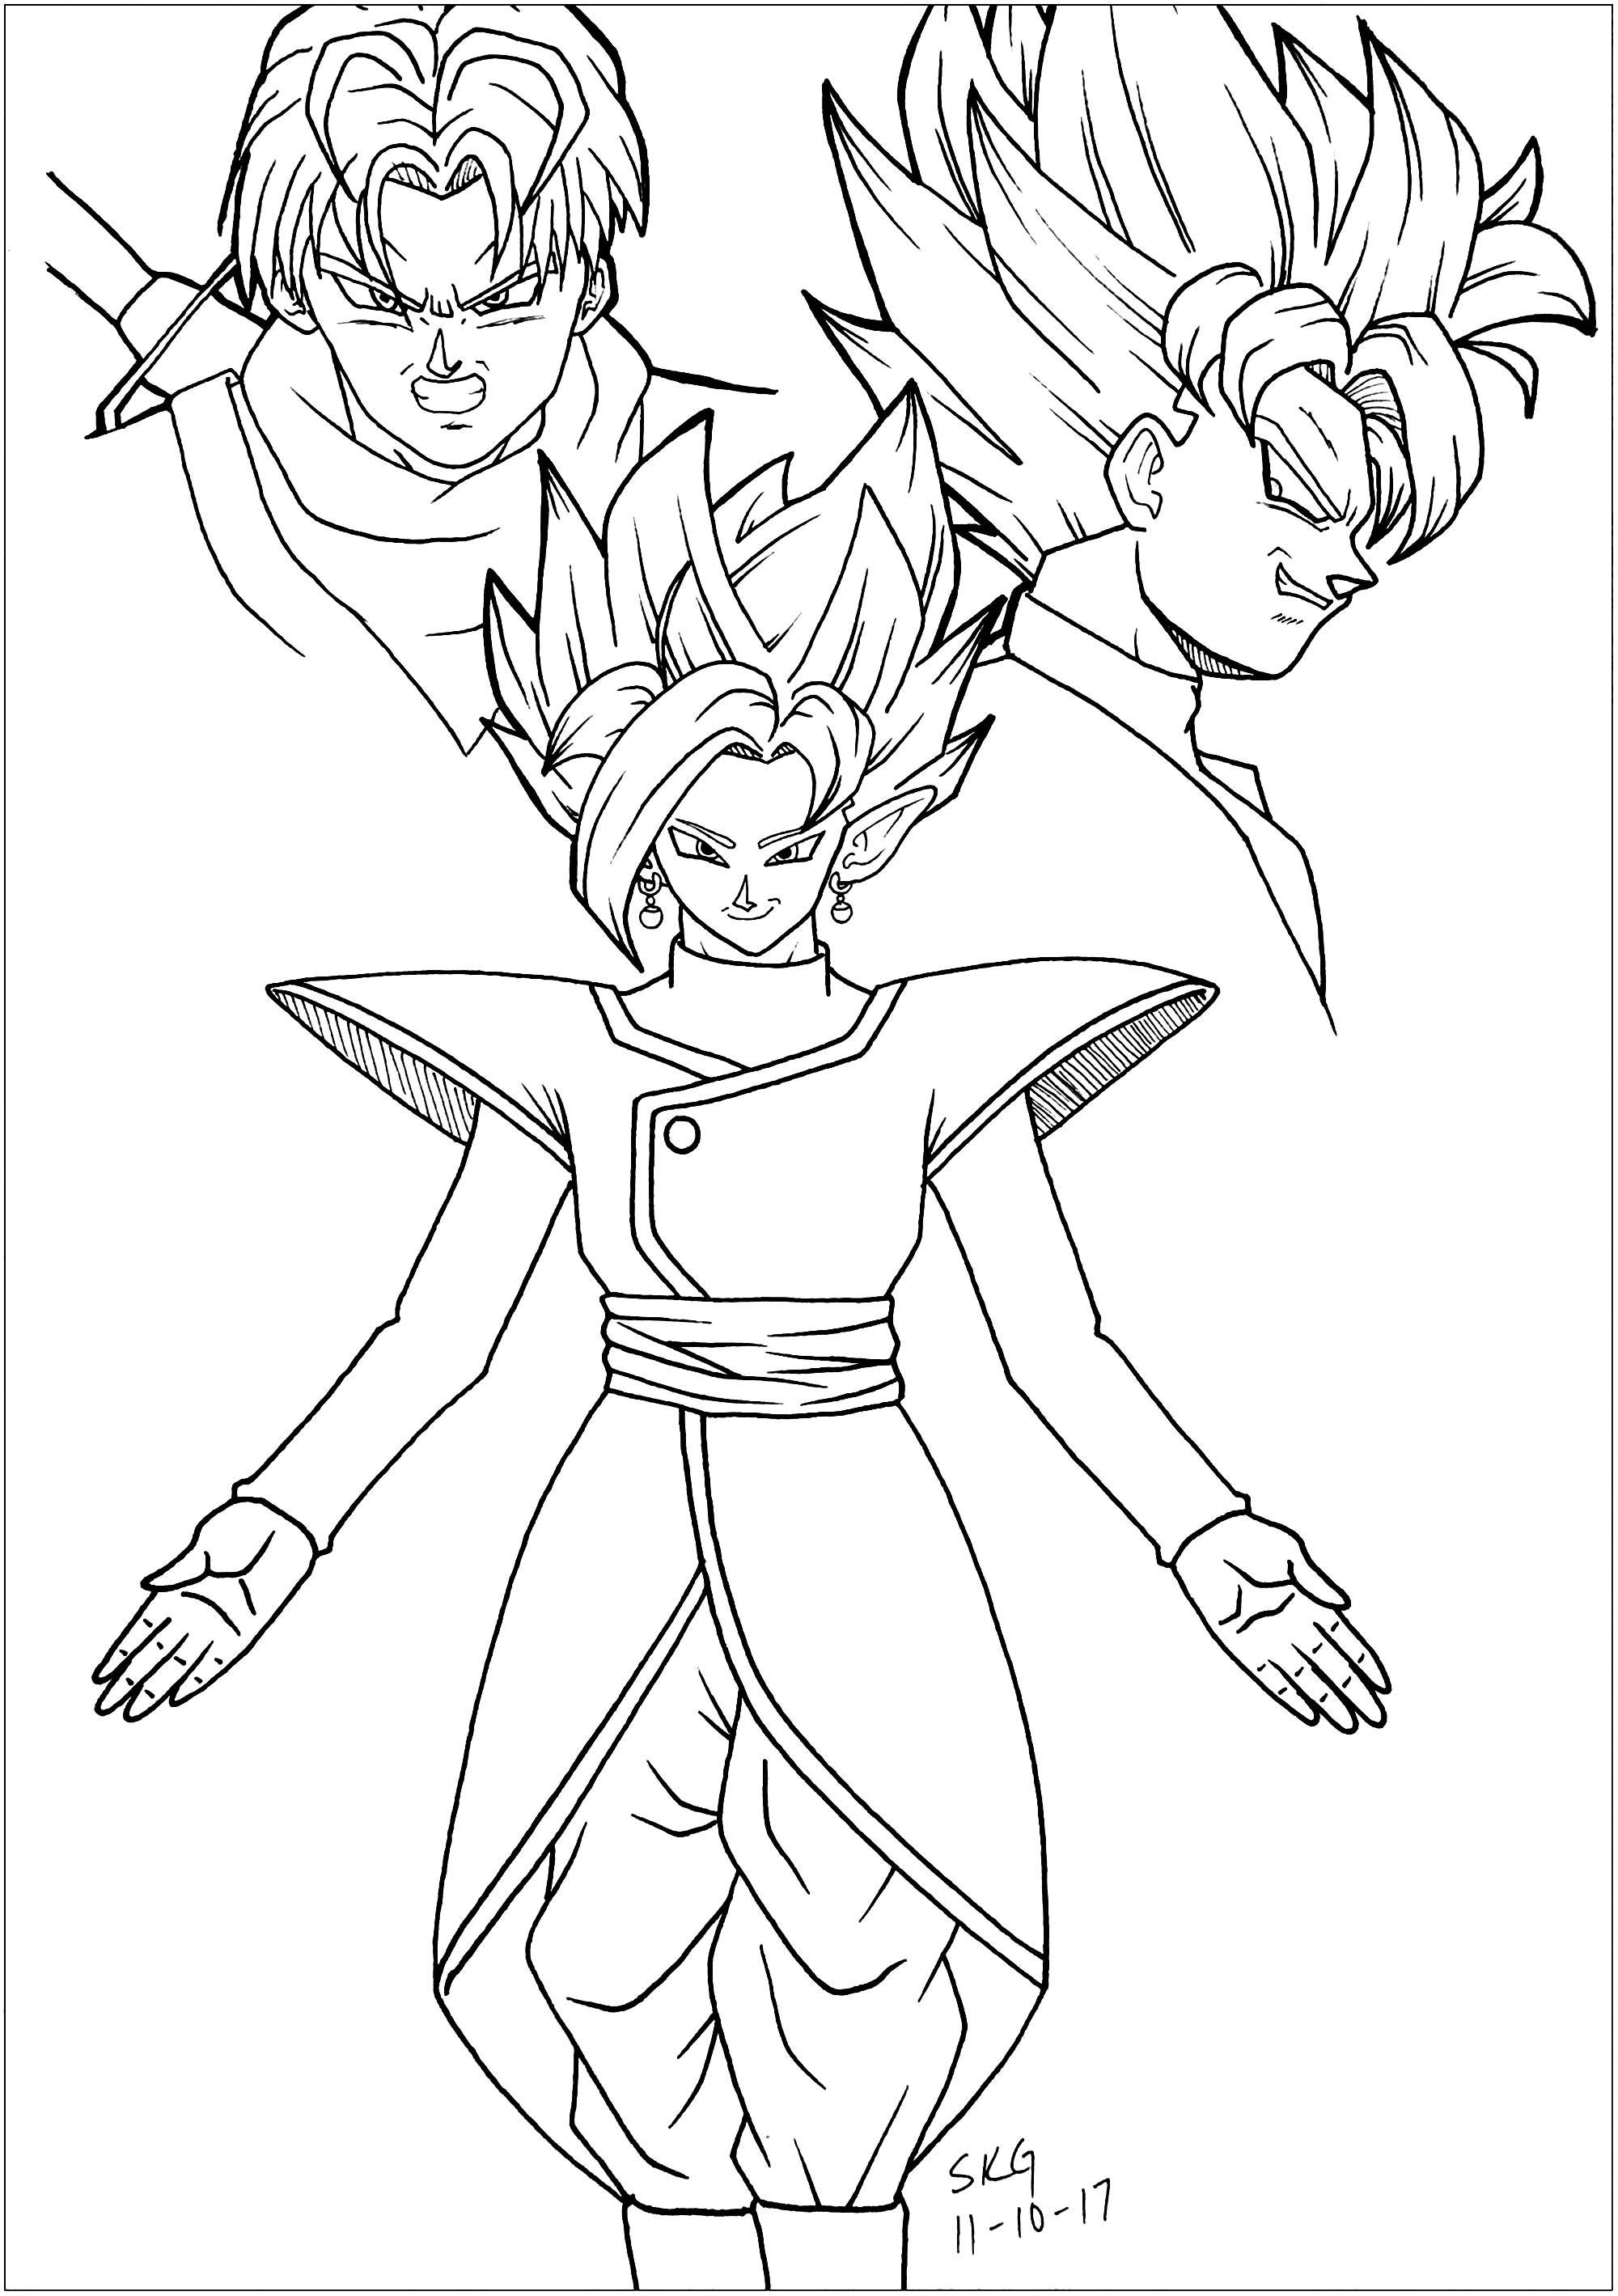 Black Goku Trunks and Zamasu